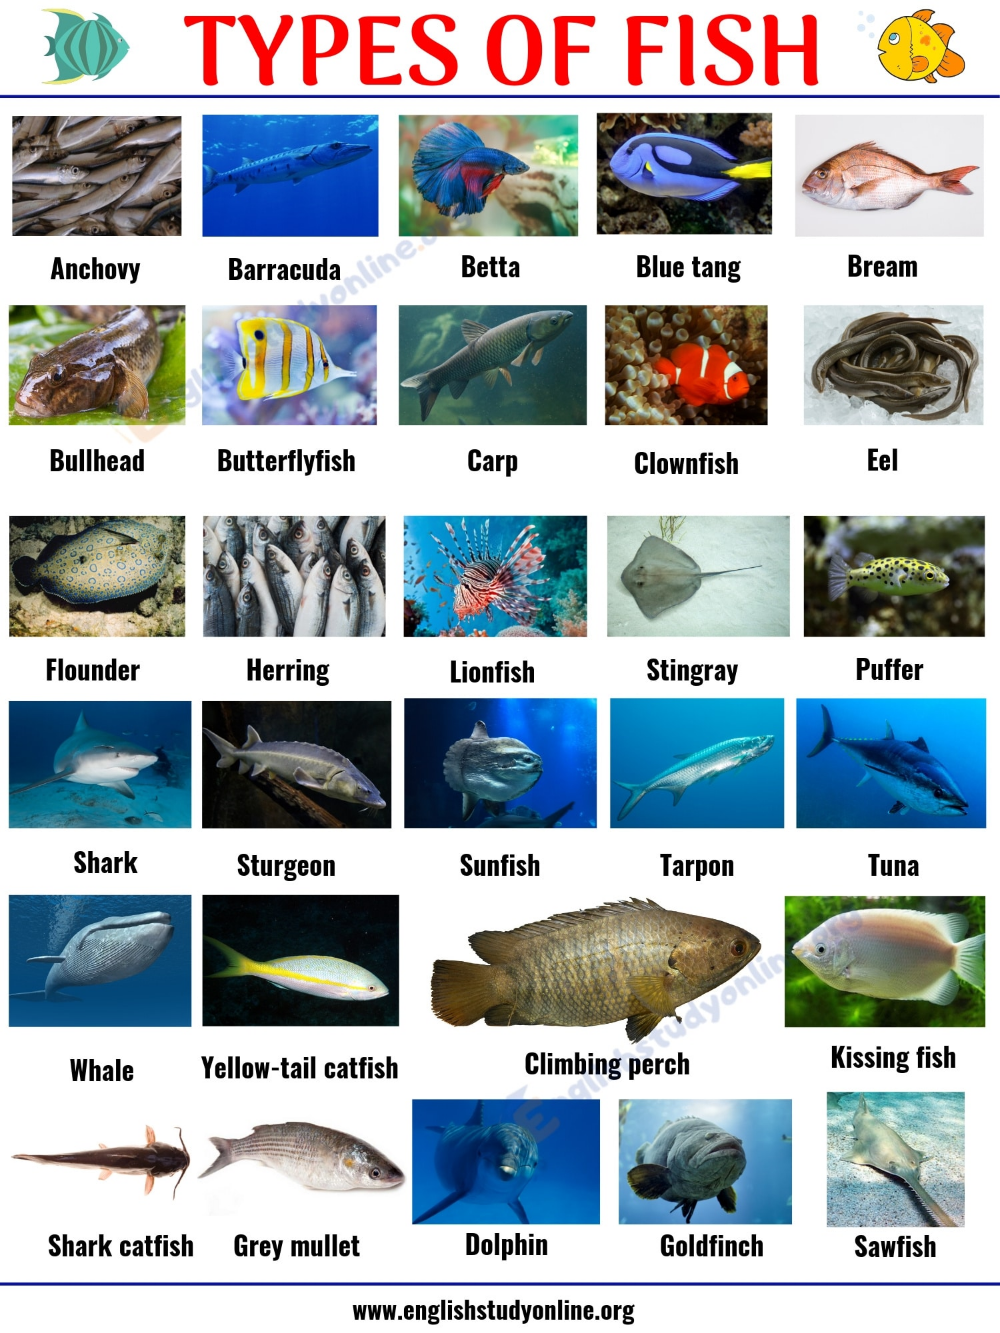 Types Of Fish List Of 29 Popular Fish Names With Pictures In English English Study Online Types Of Fish Animals Name In English Fish